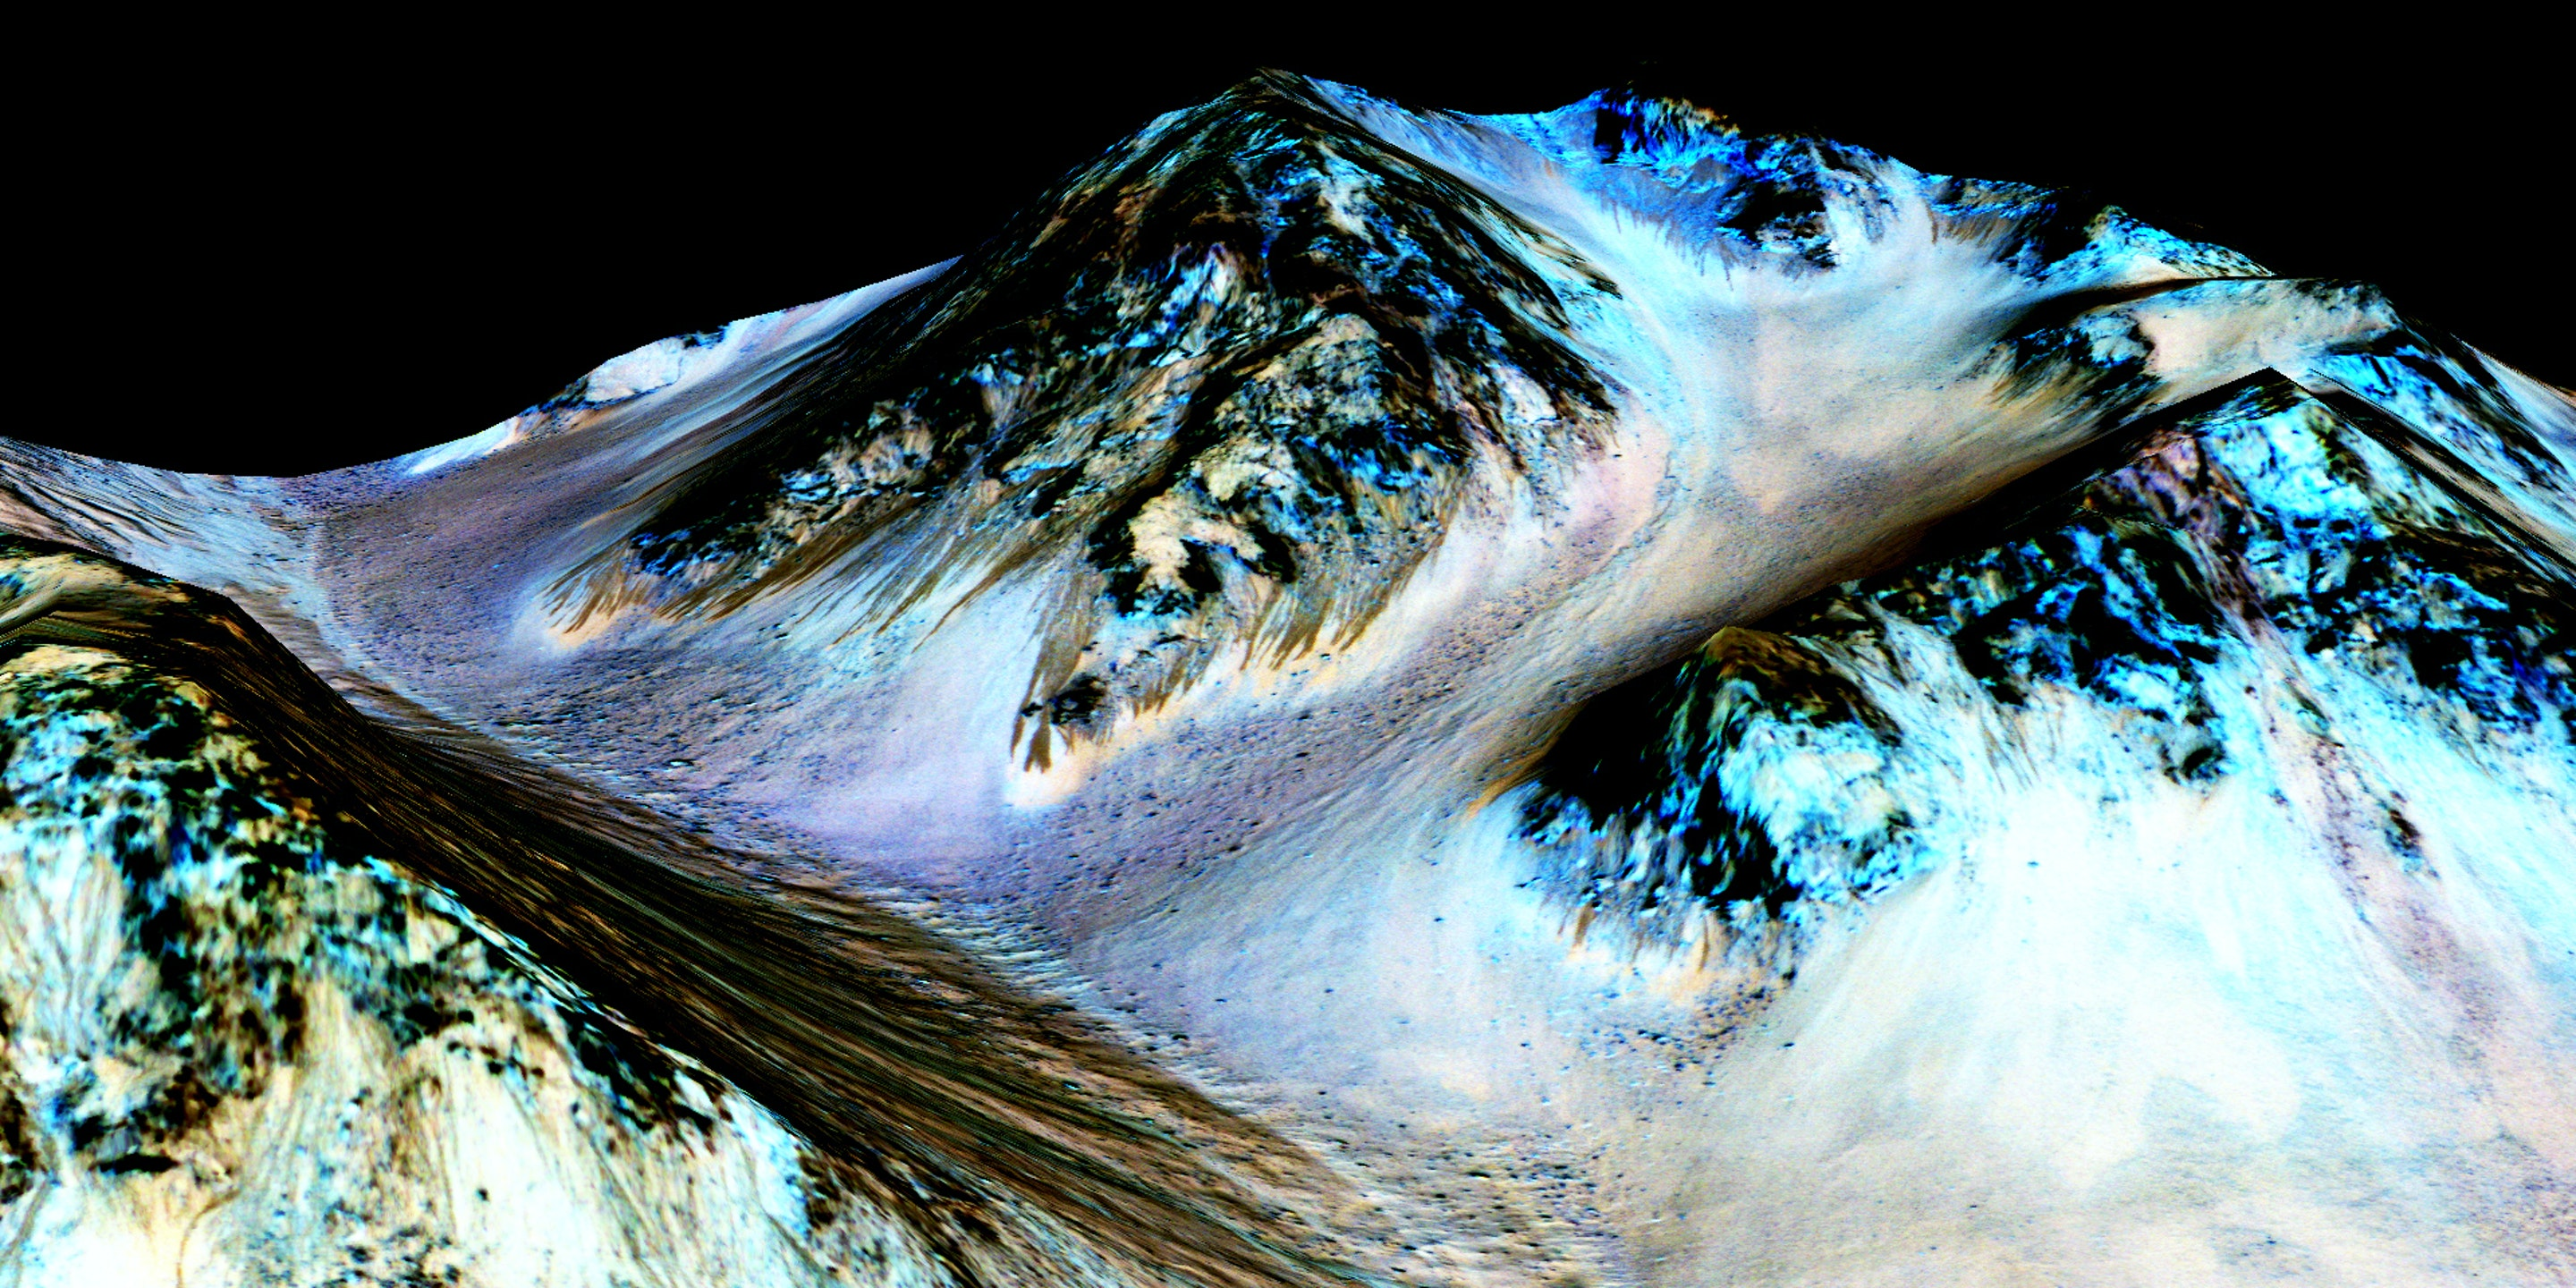 Recurring lineae found on the slopes of Mars are evidence that liquid water exists there today.